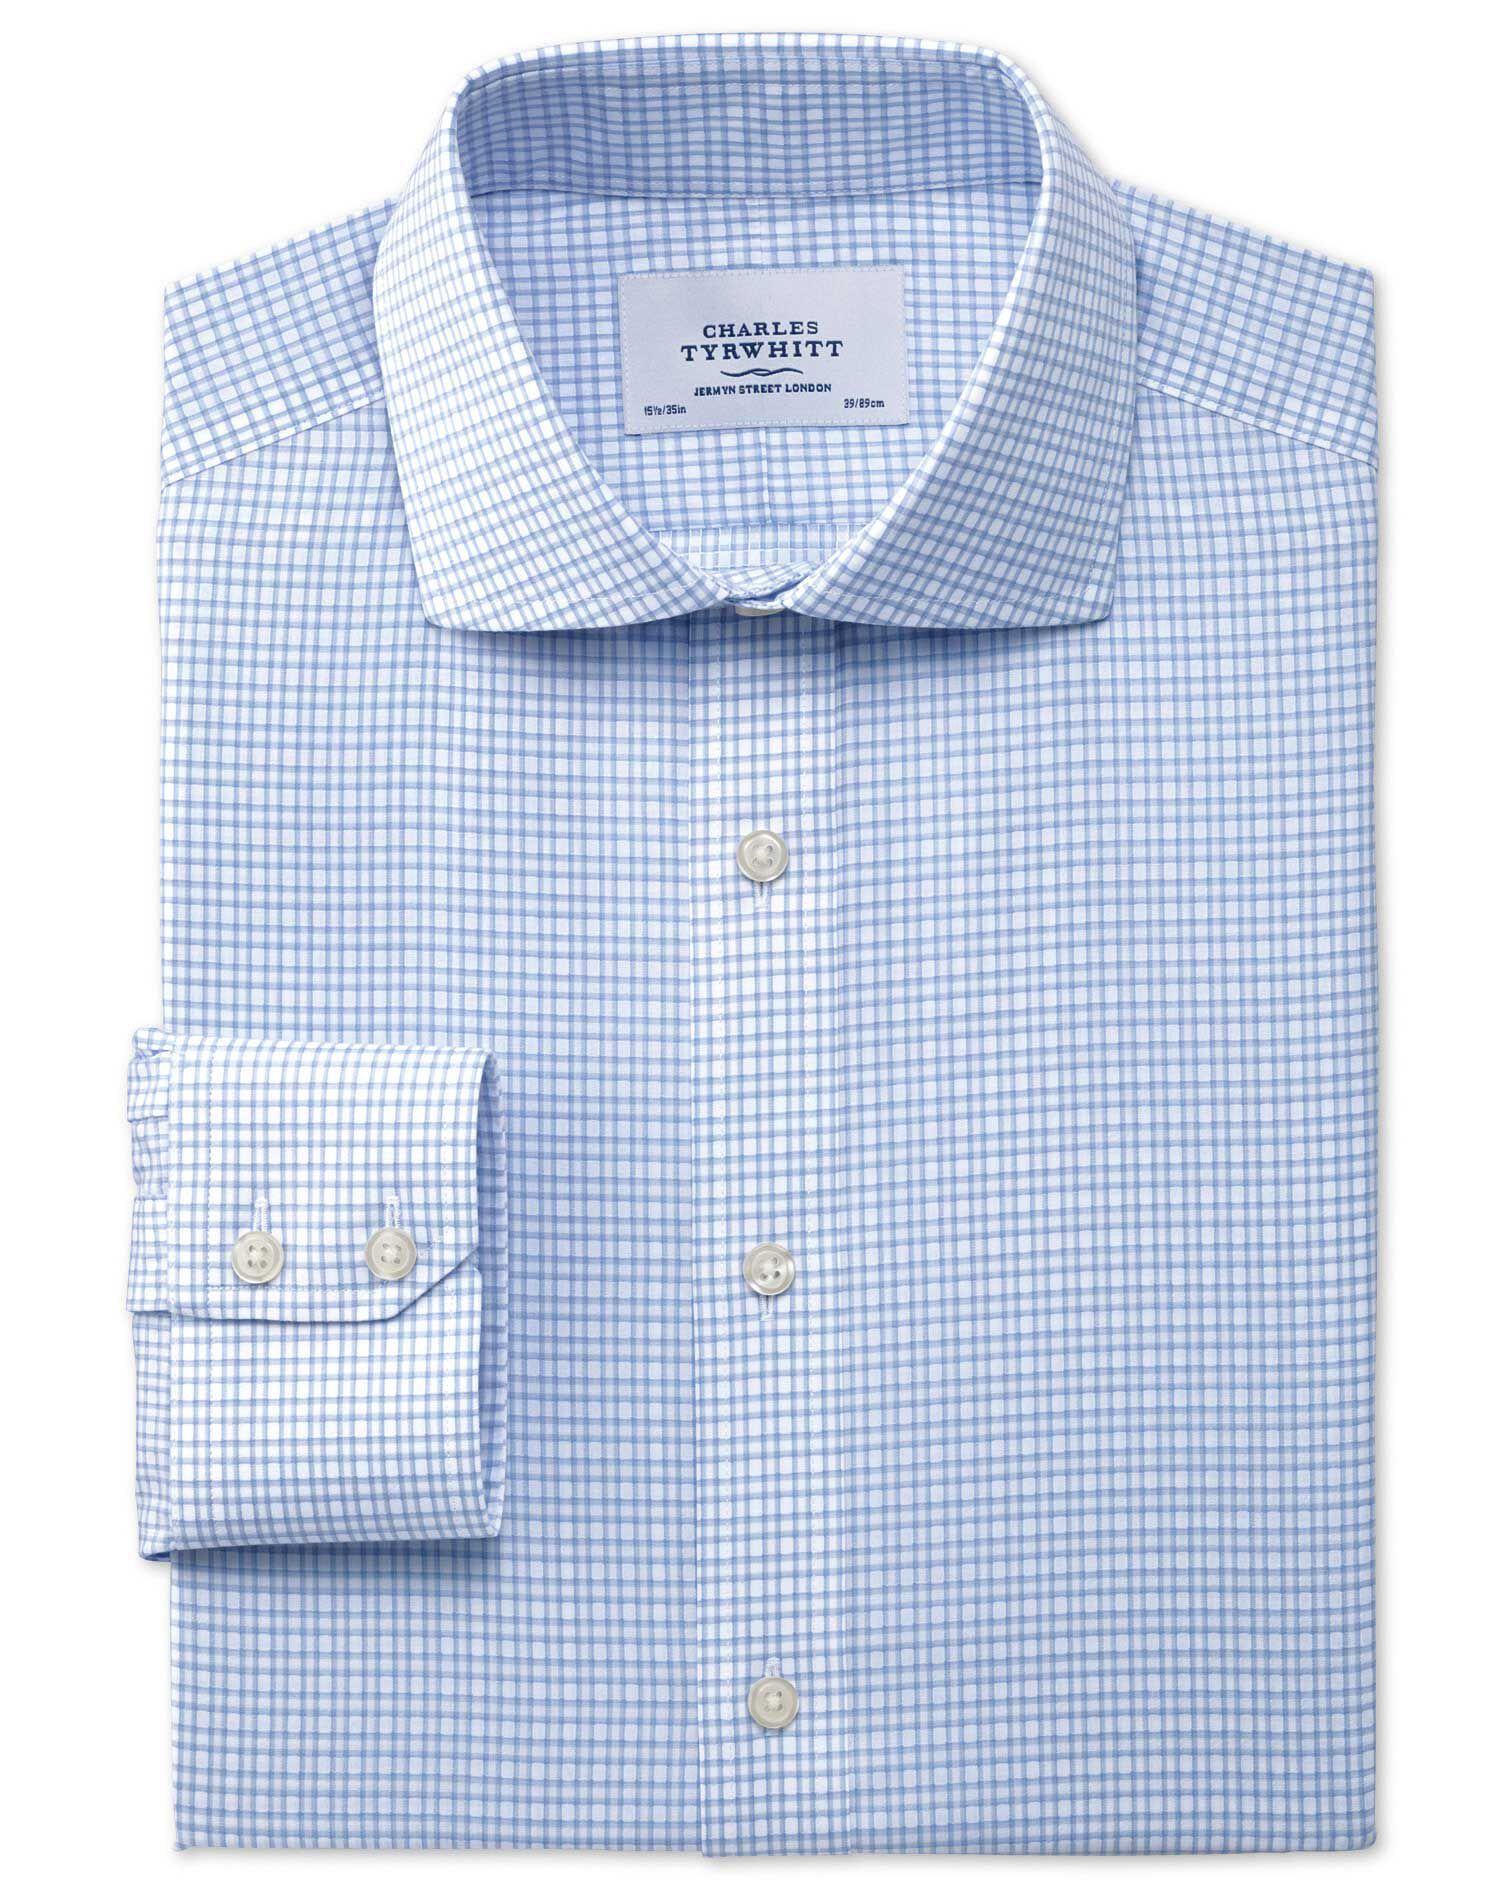 Extra Slim Fit Cutaway Collar Non-Iron Dobby Check Sky Blue Cotton Formal Shirt Single Cuff Size 15.